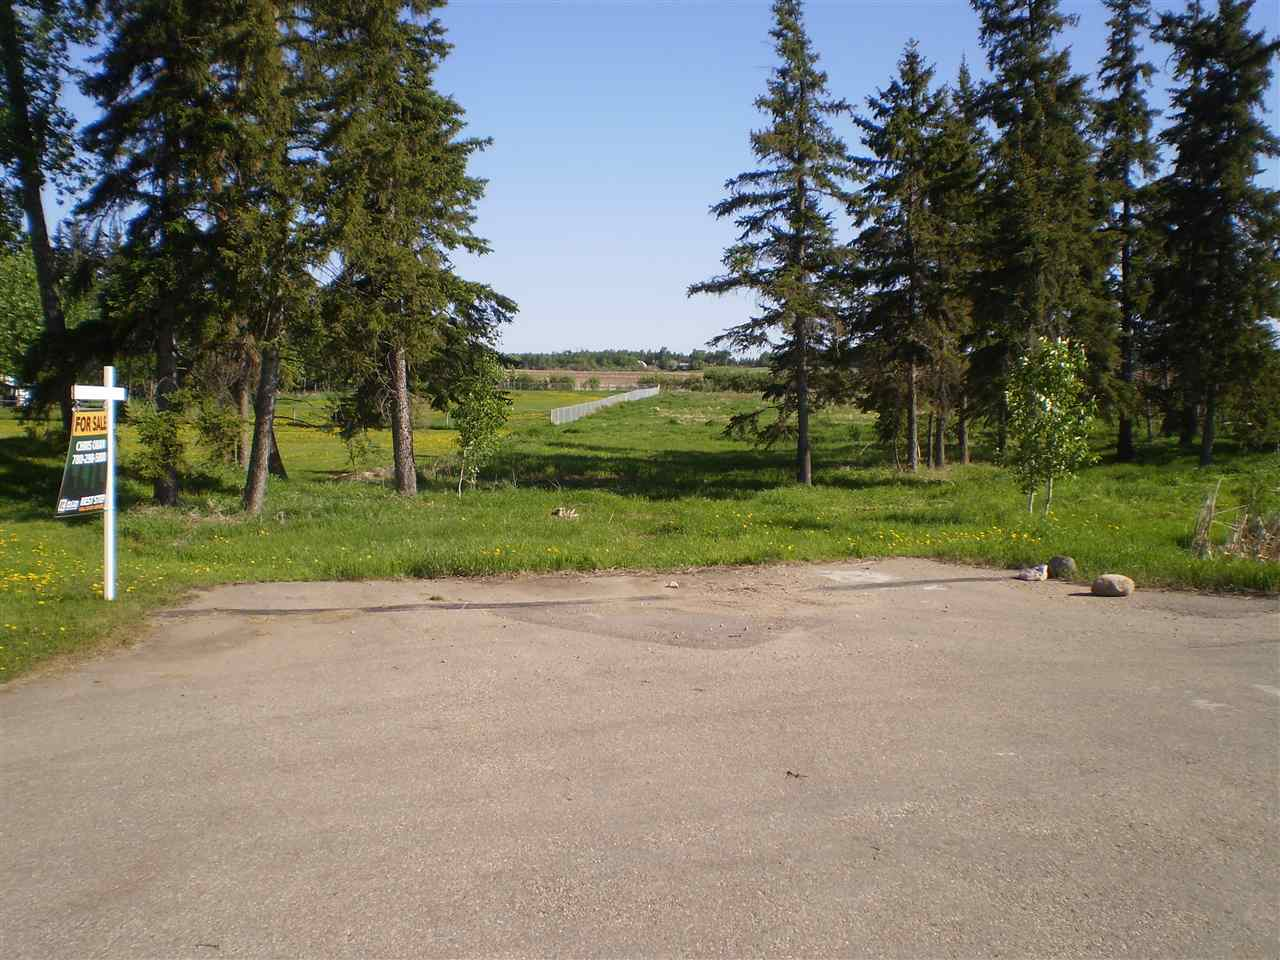 Beautiful 2.5 acres treed lot to build on. Paved to Subdivision and close to Beaumont, Nisku, Leduc and International Airport. Easy access to Highway 21. Have builder who will quote you a new construction price if needed.